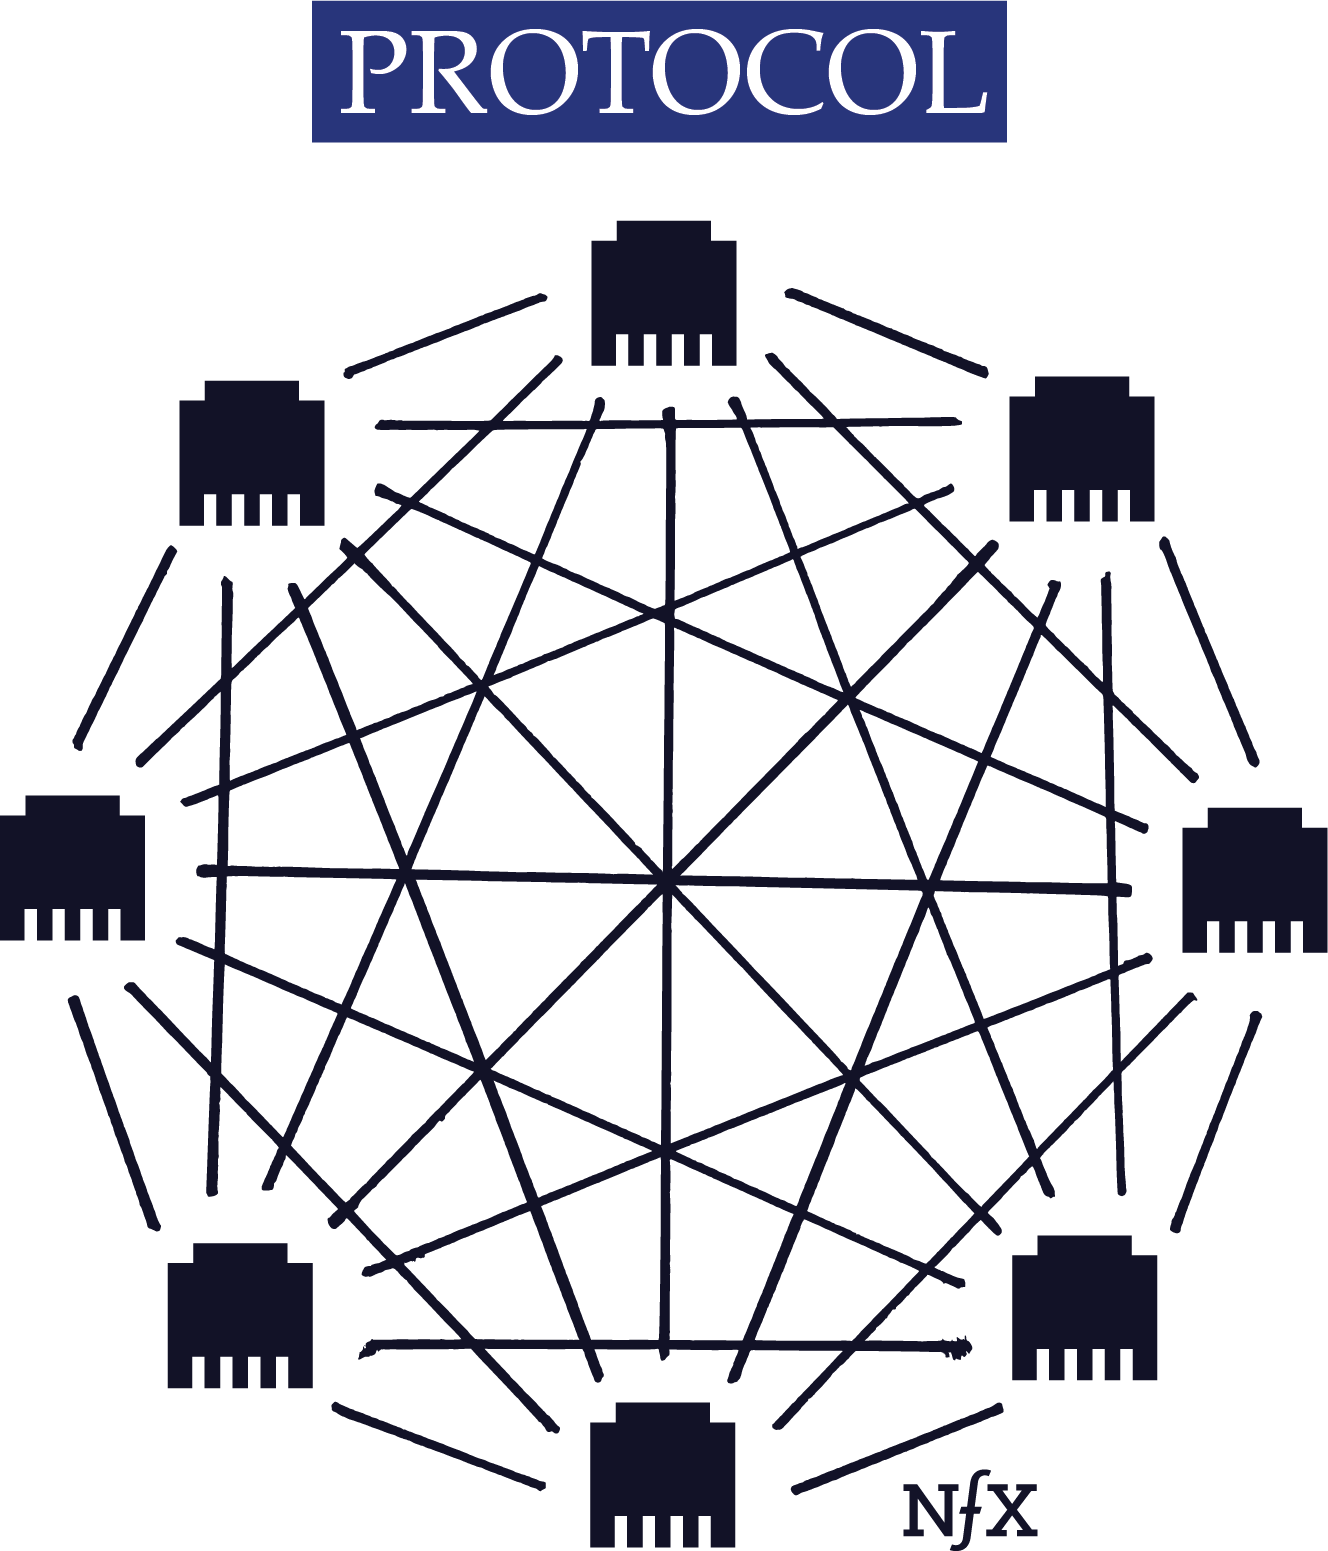 The Network Effects Manual 13 Different And Counting By Seeing This Circuit Diagram You May Get Little Confusion But Do Protocol Networks Coalesce Around Communication Computational Standards Which Form Basis For Links Between Nodes Eg Bitcoin Miners